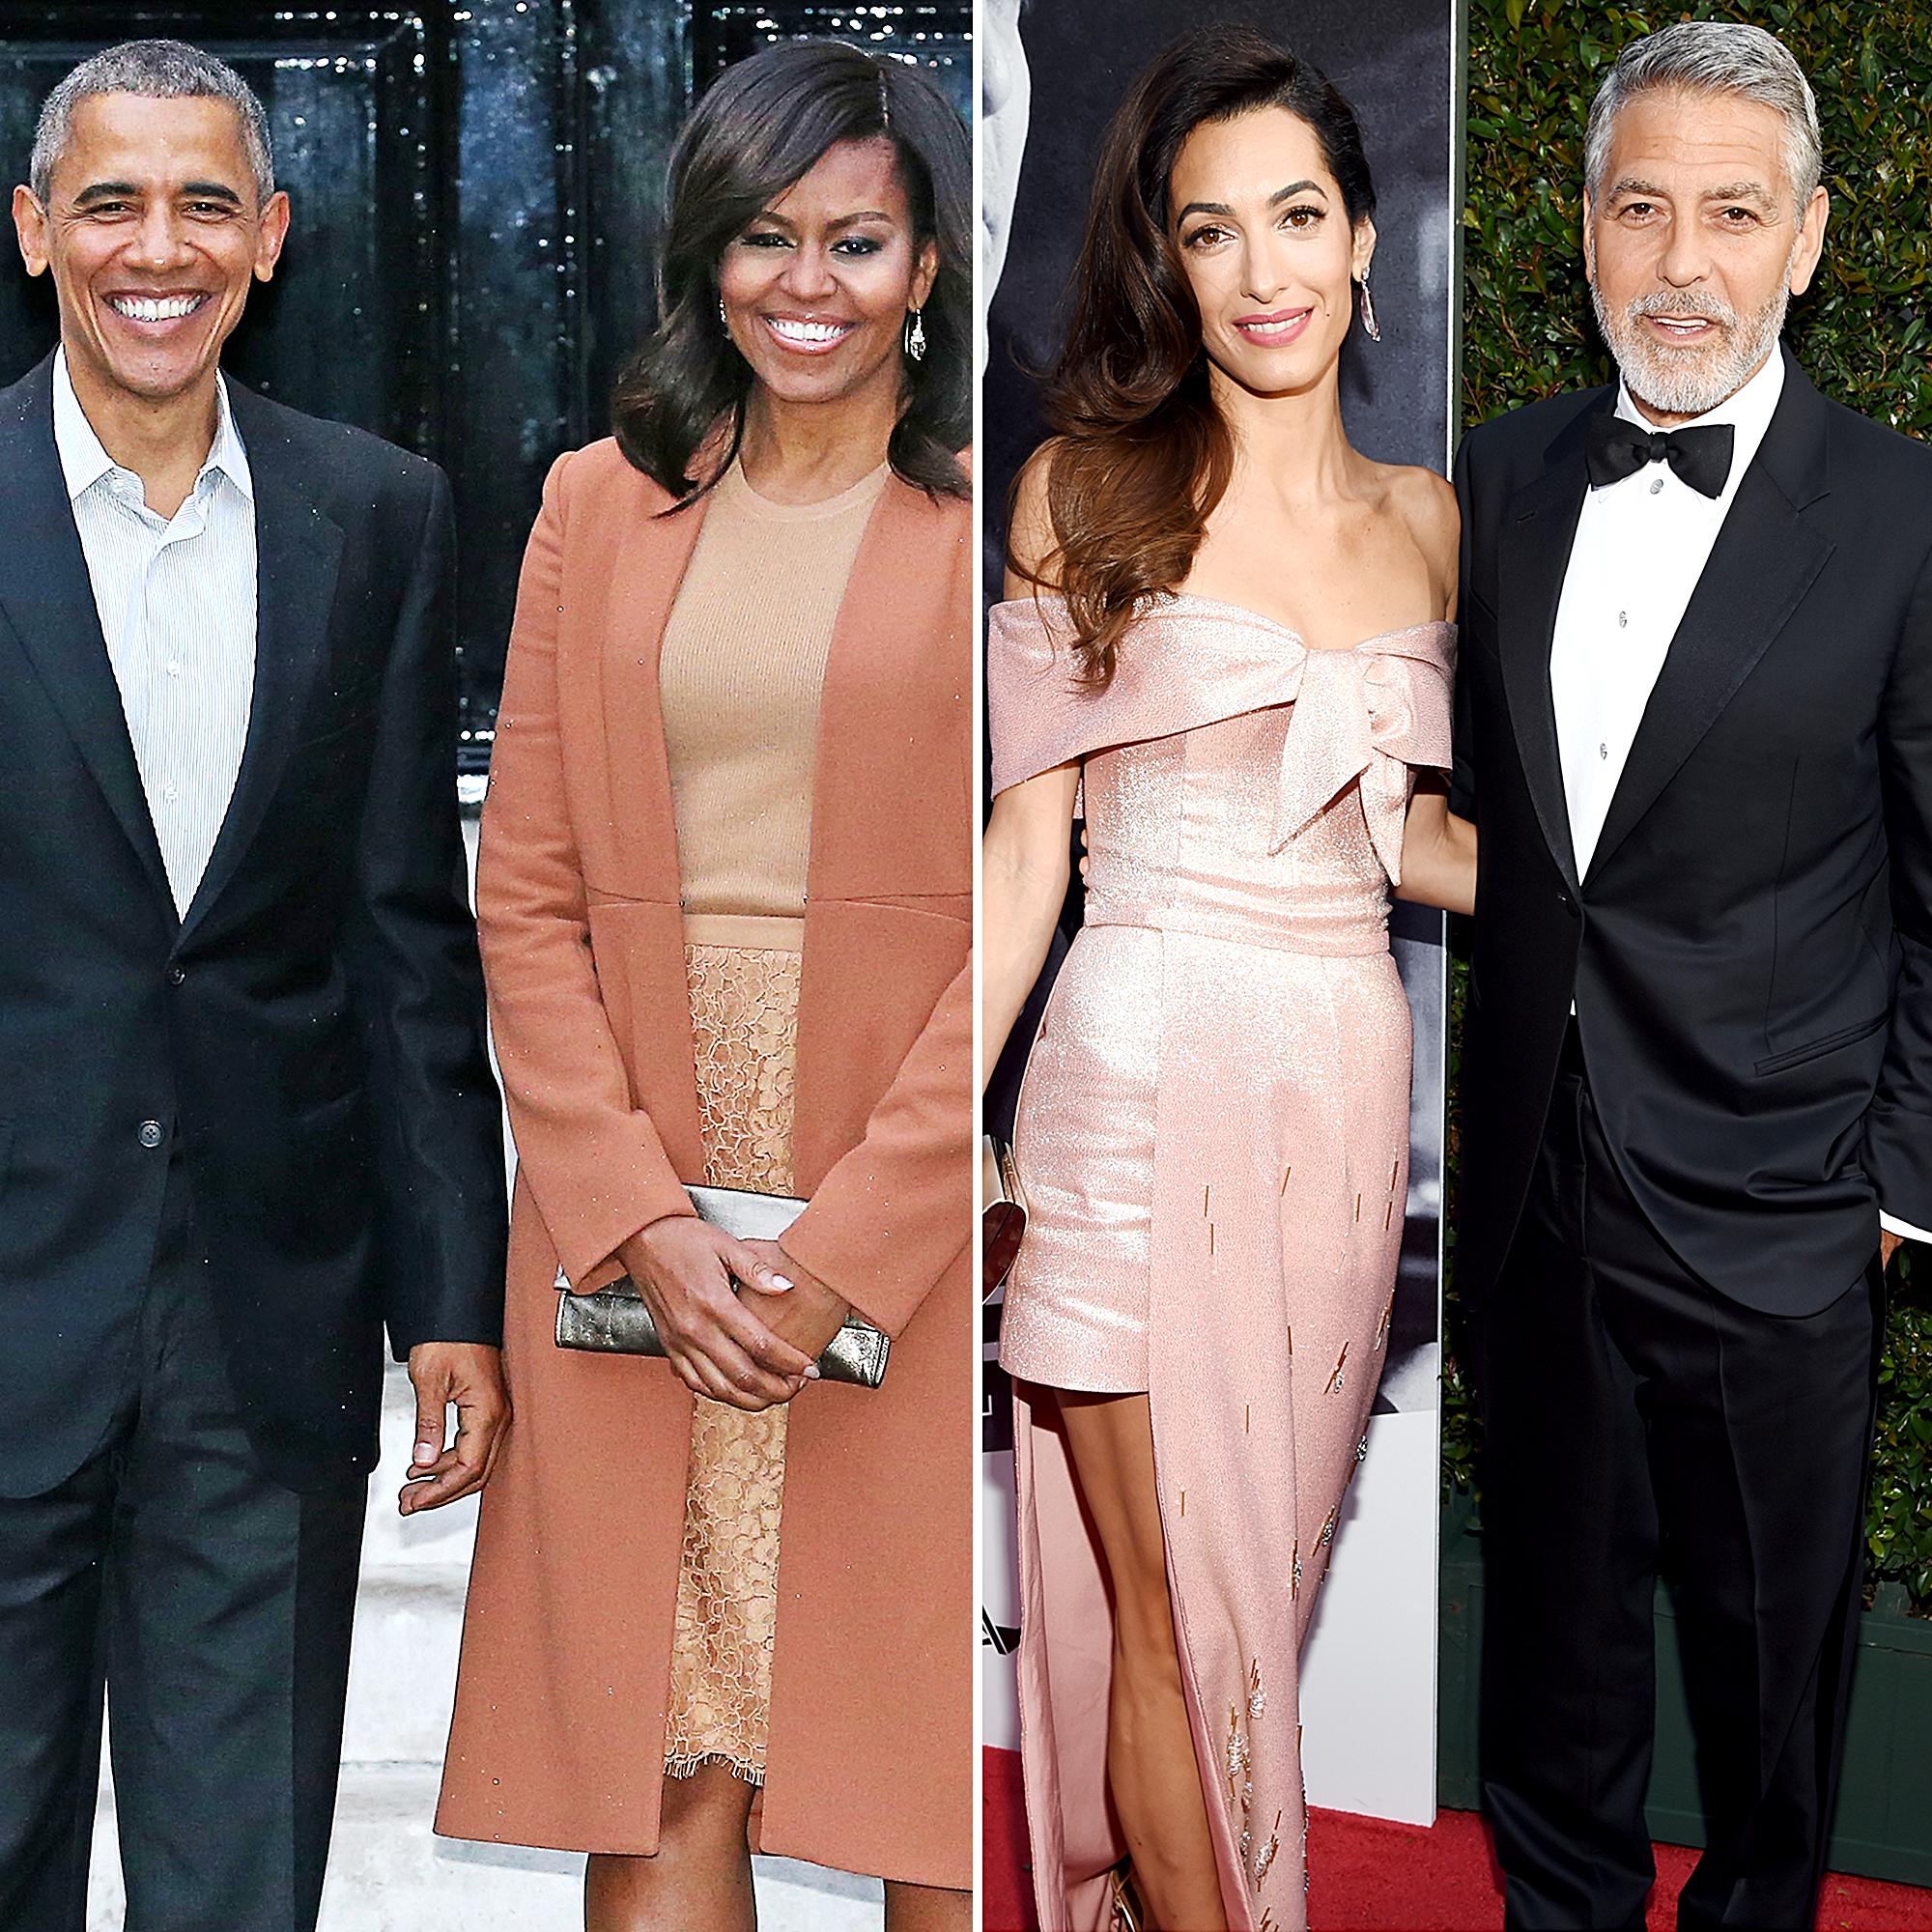 Barack, Michelle Obama Hang With George, Amal Clooney in